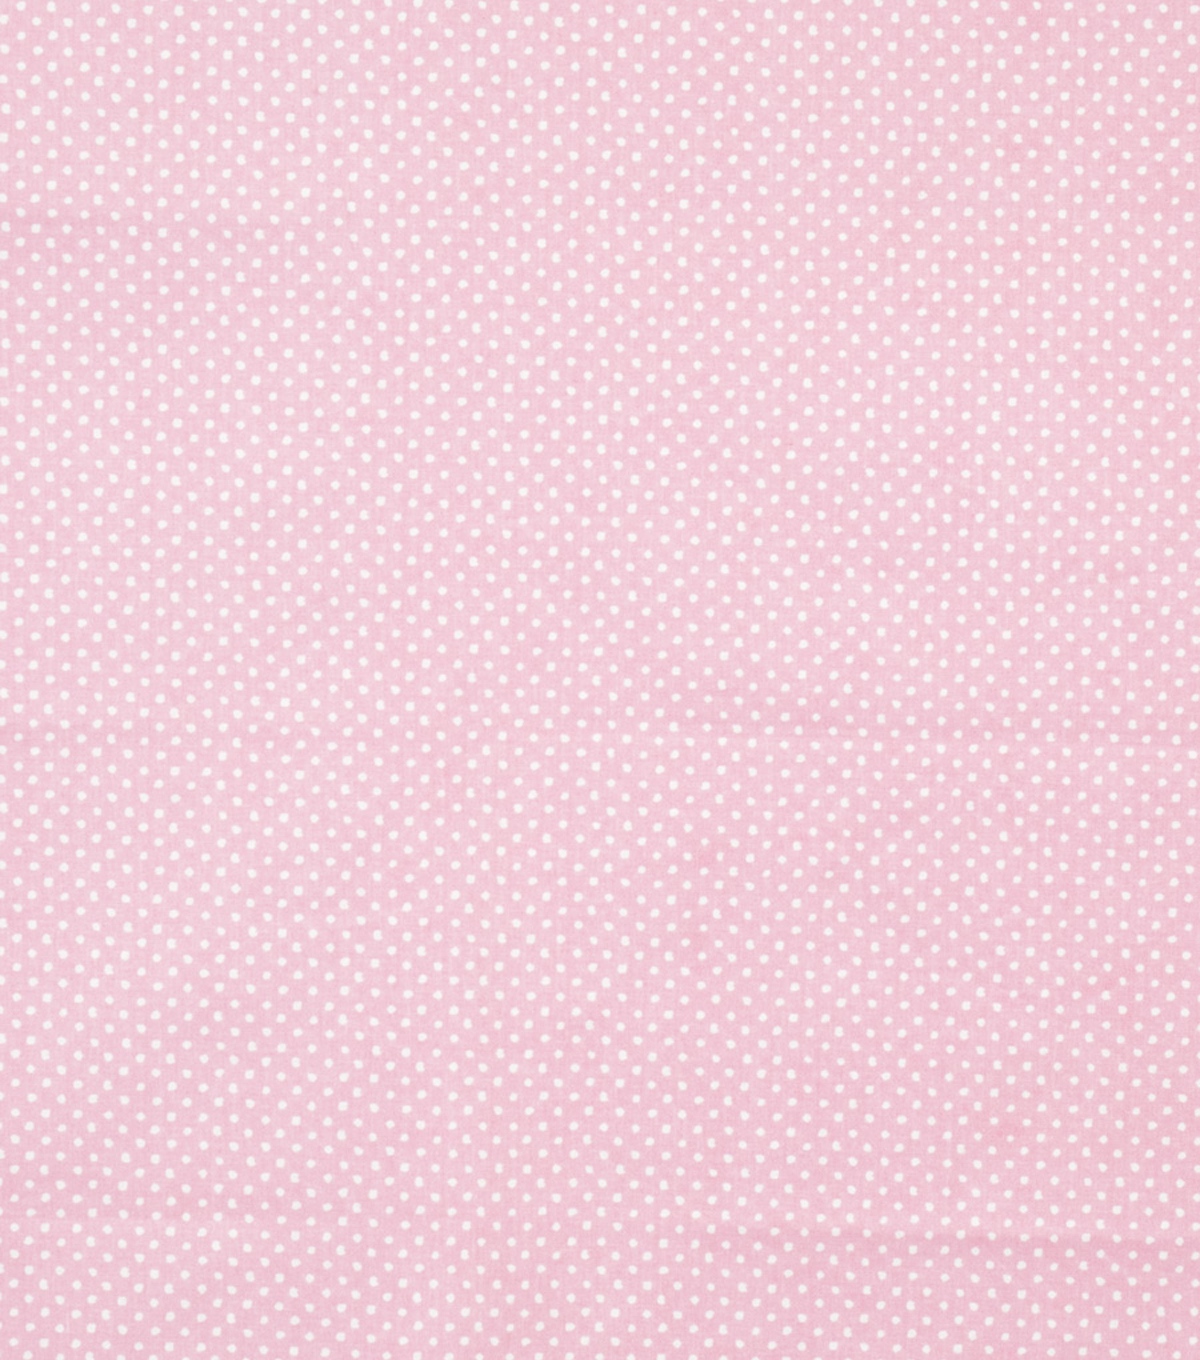 Home Decor 8\u0022x8\u0022 Fabric Swatch-Print Fabric Eaton Square Coil  Candy